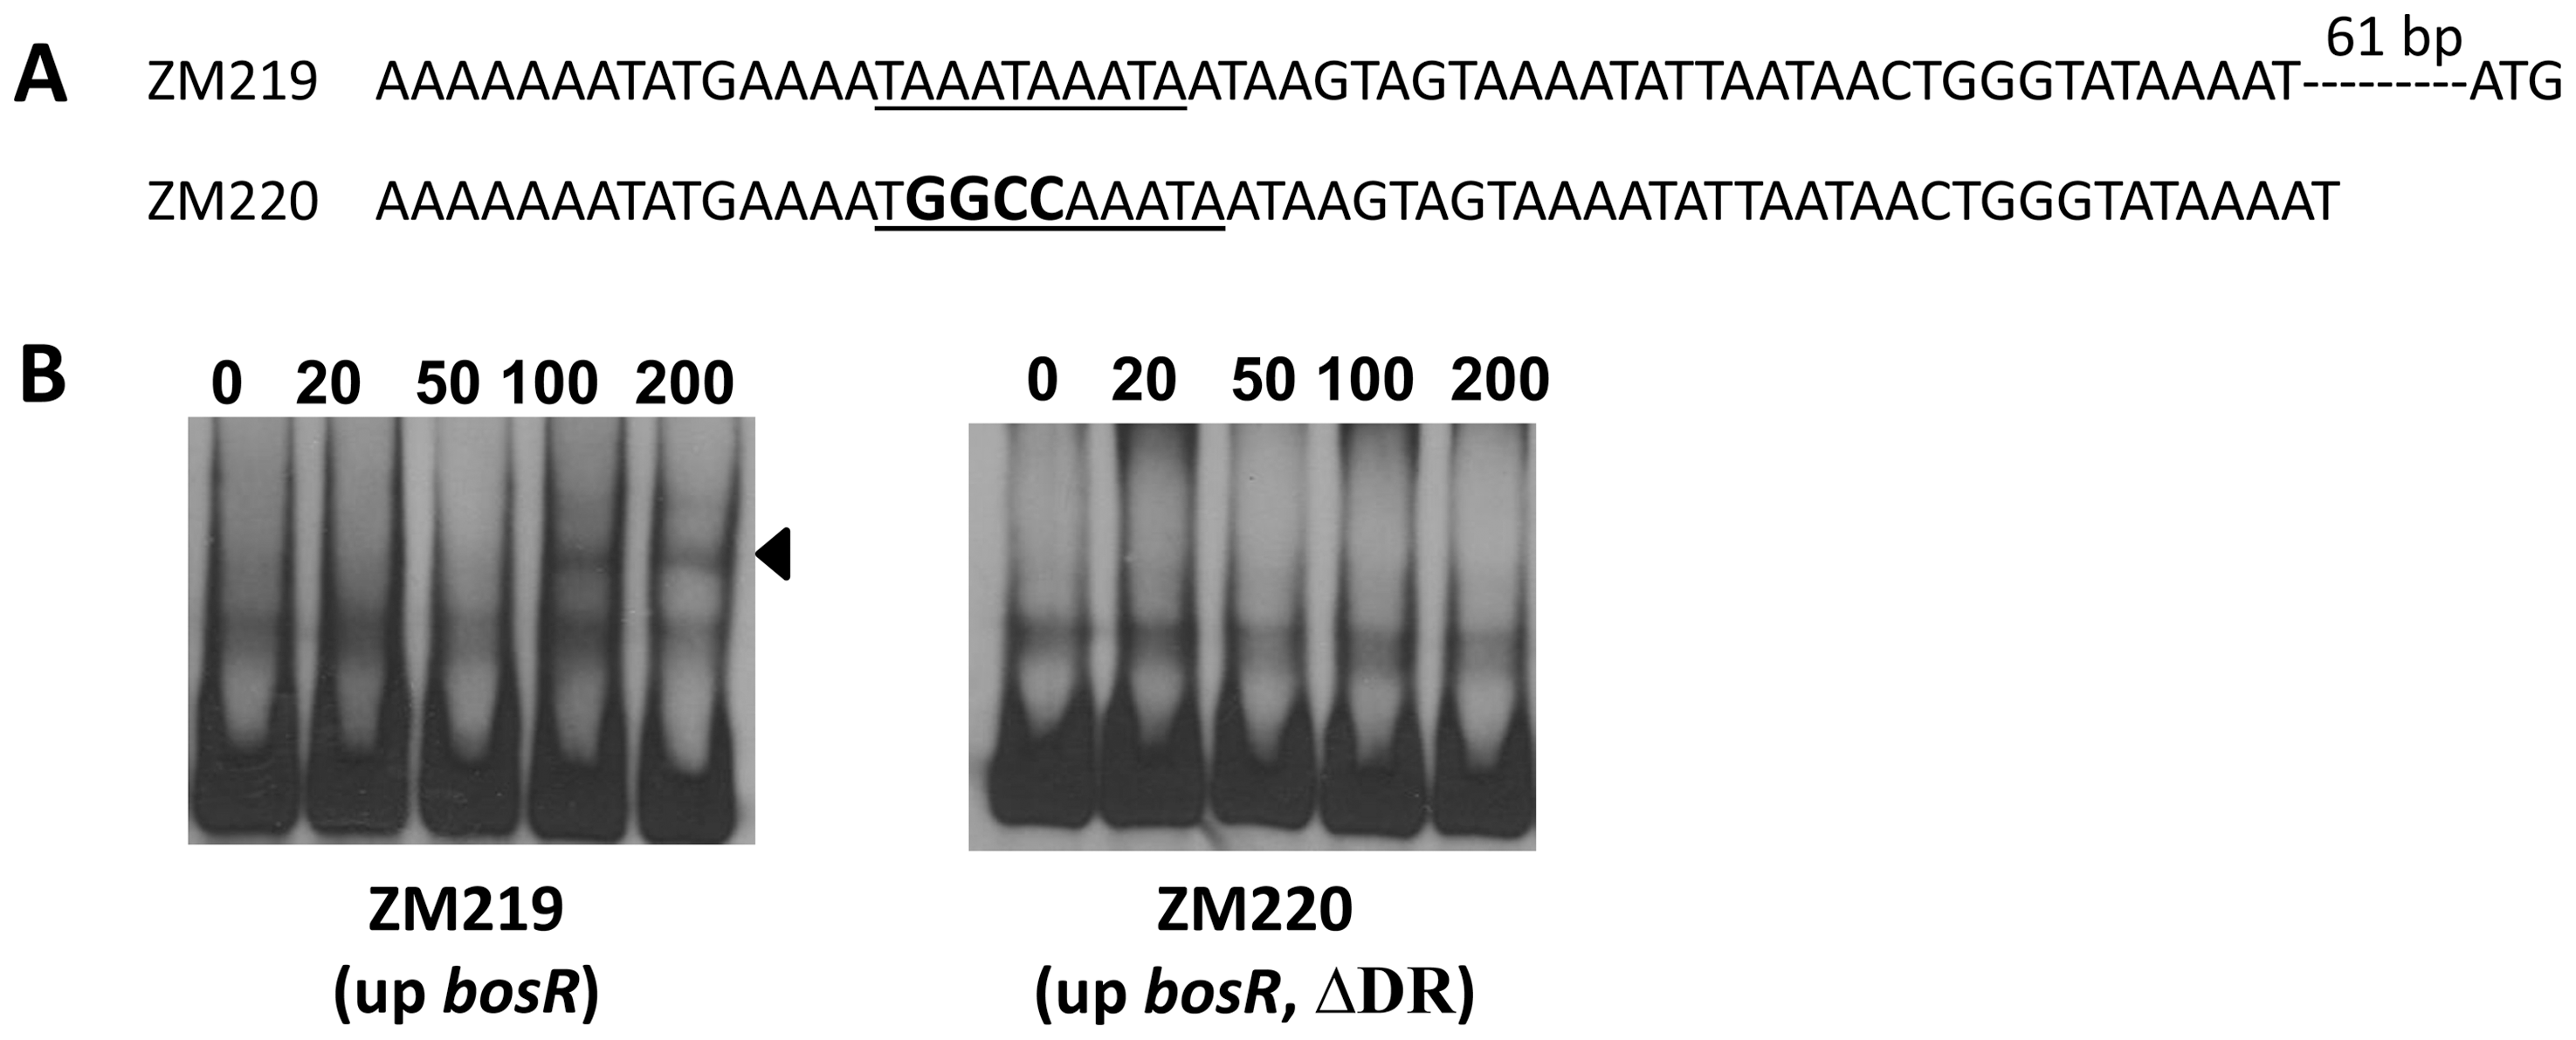 Analysis of the DR in the upstream region of <i>bosR</i>.